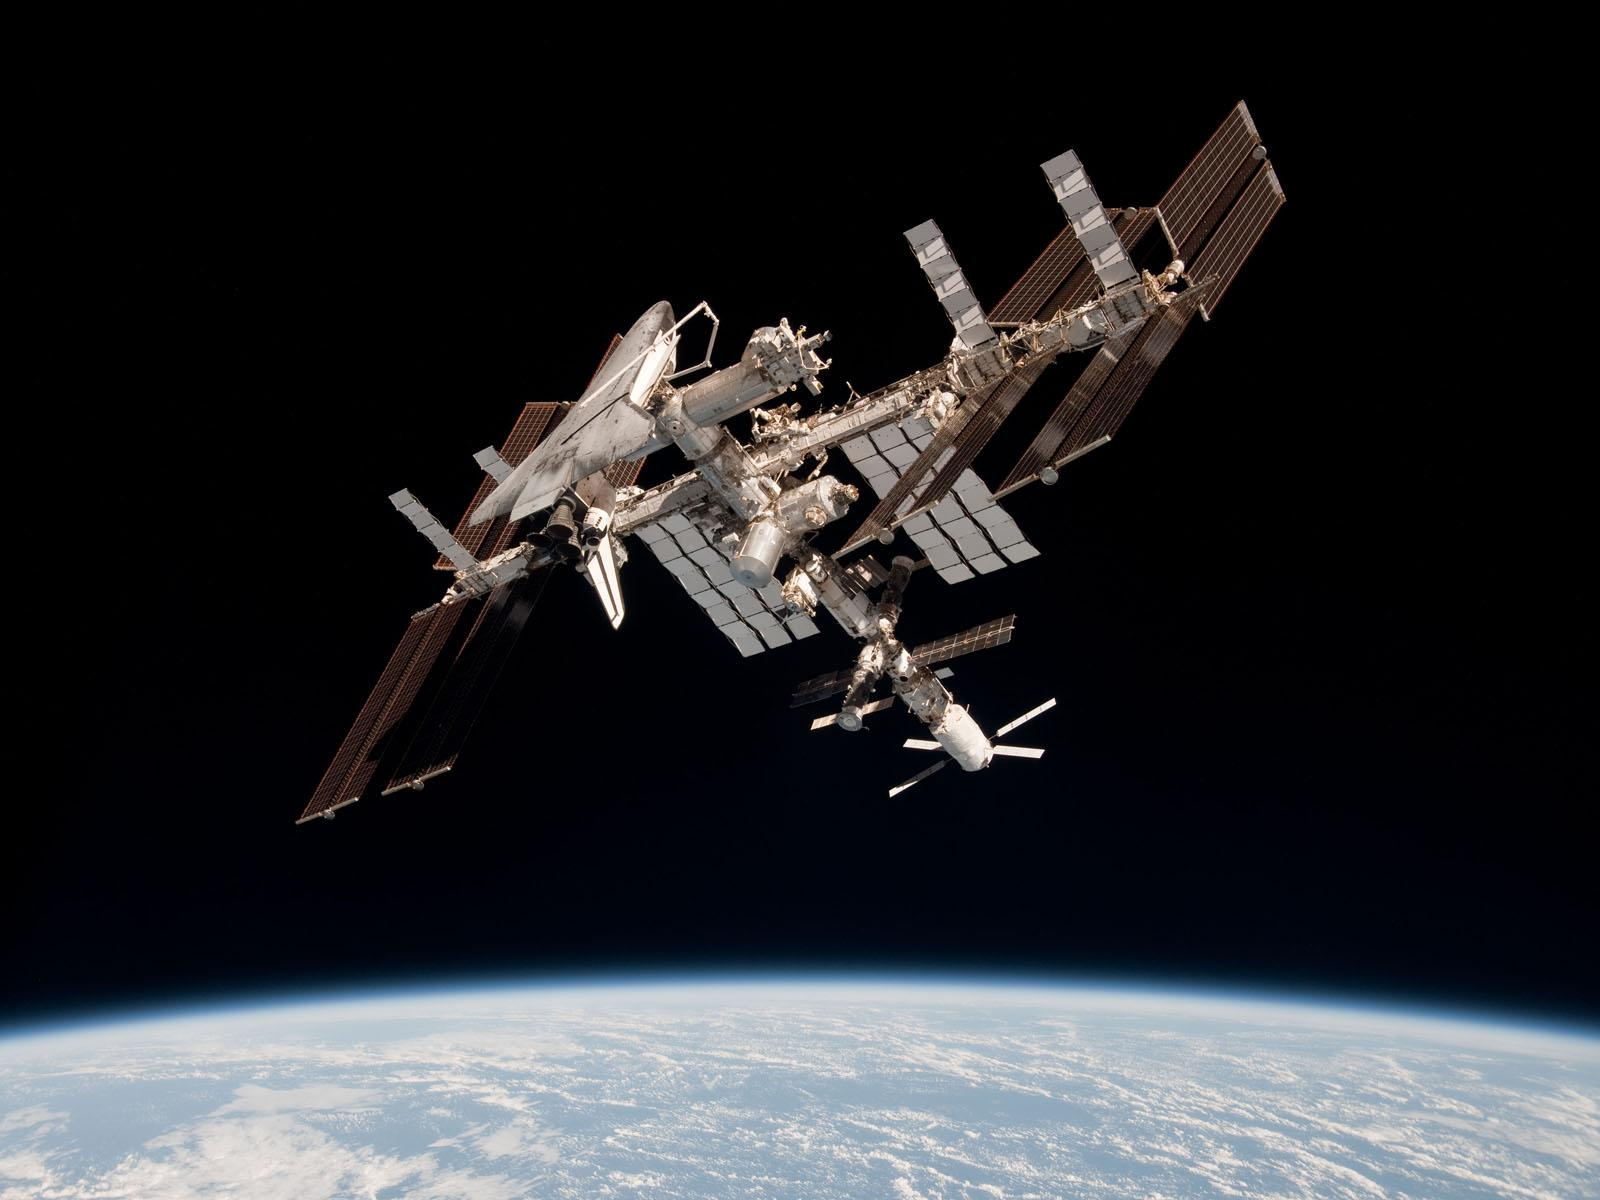 ISS_with_ATV_Johannes_Kepler_and_Shuttle_Endeavour_docked.png